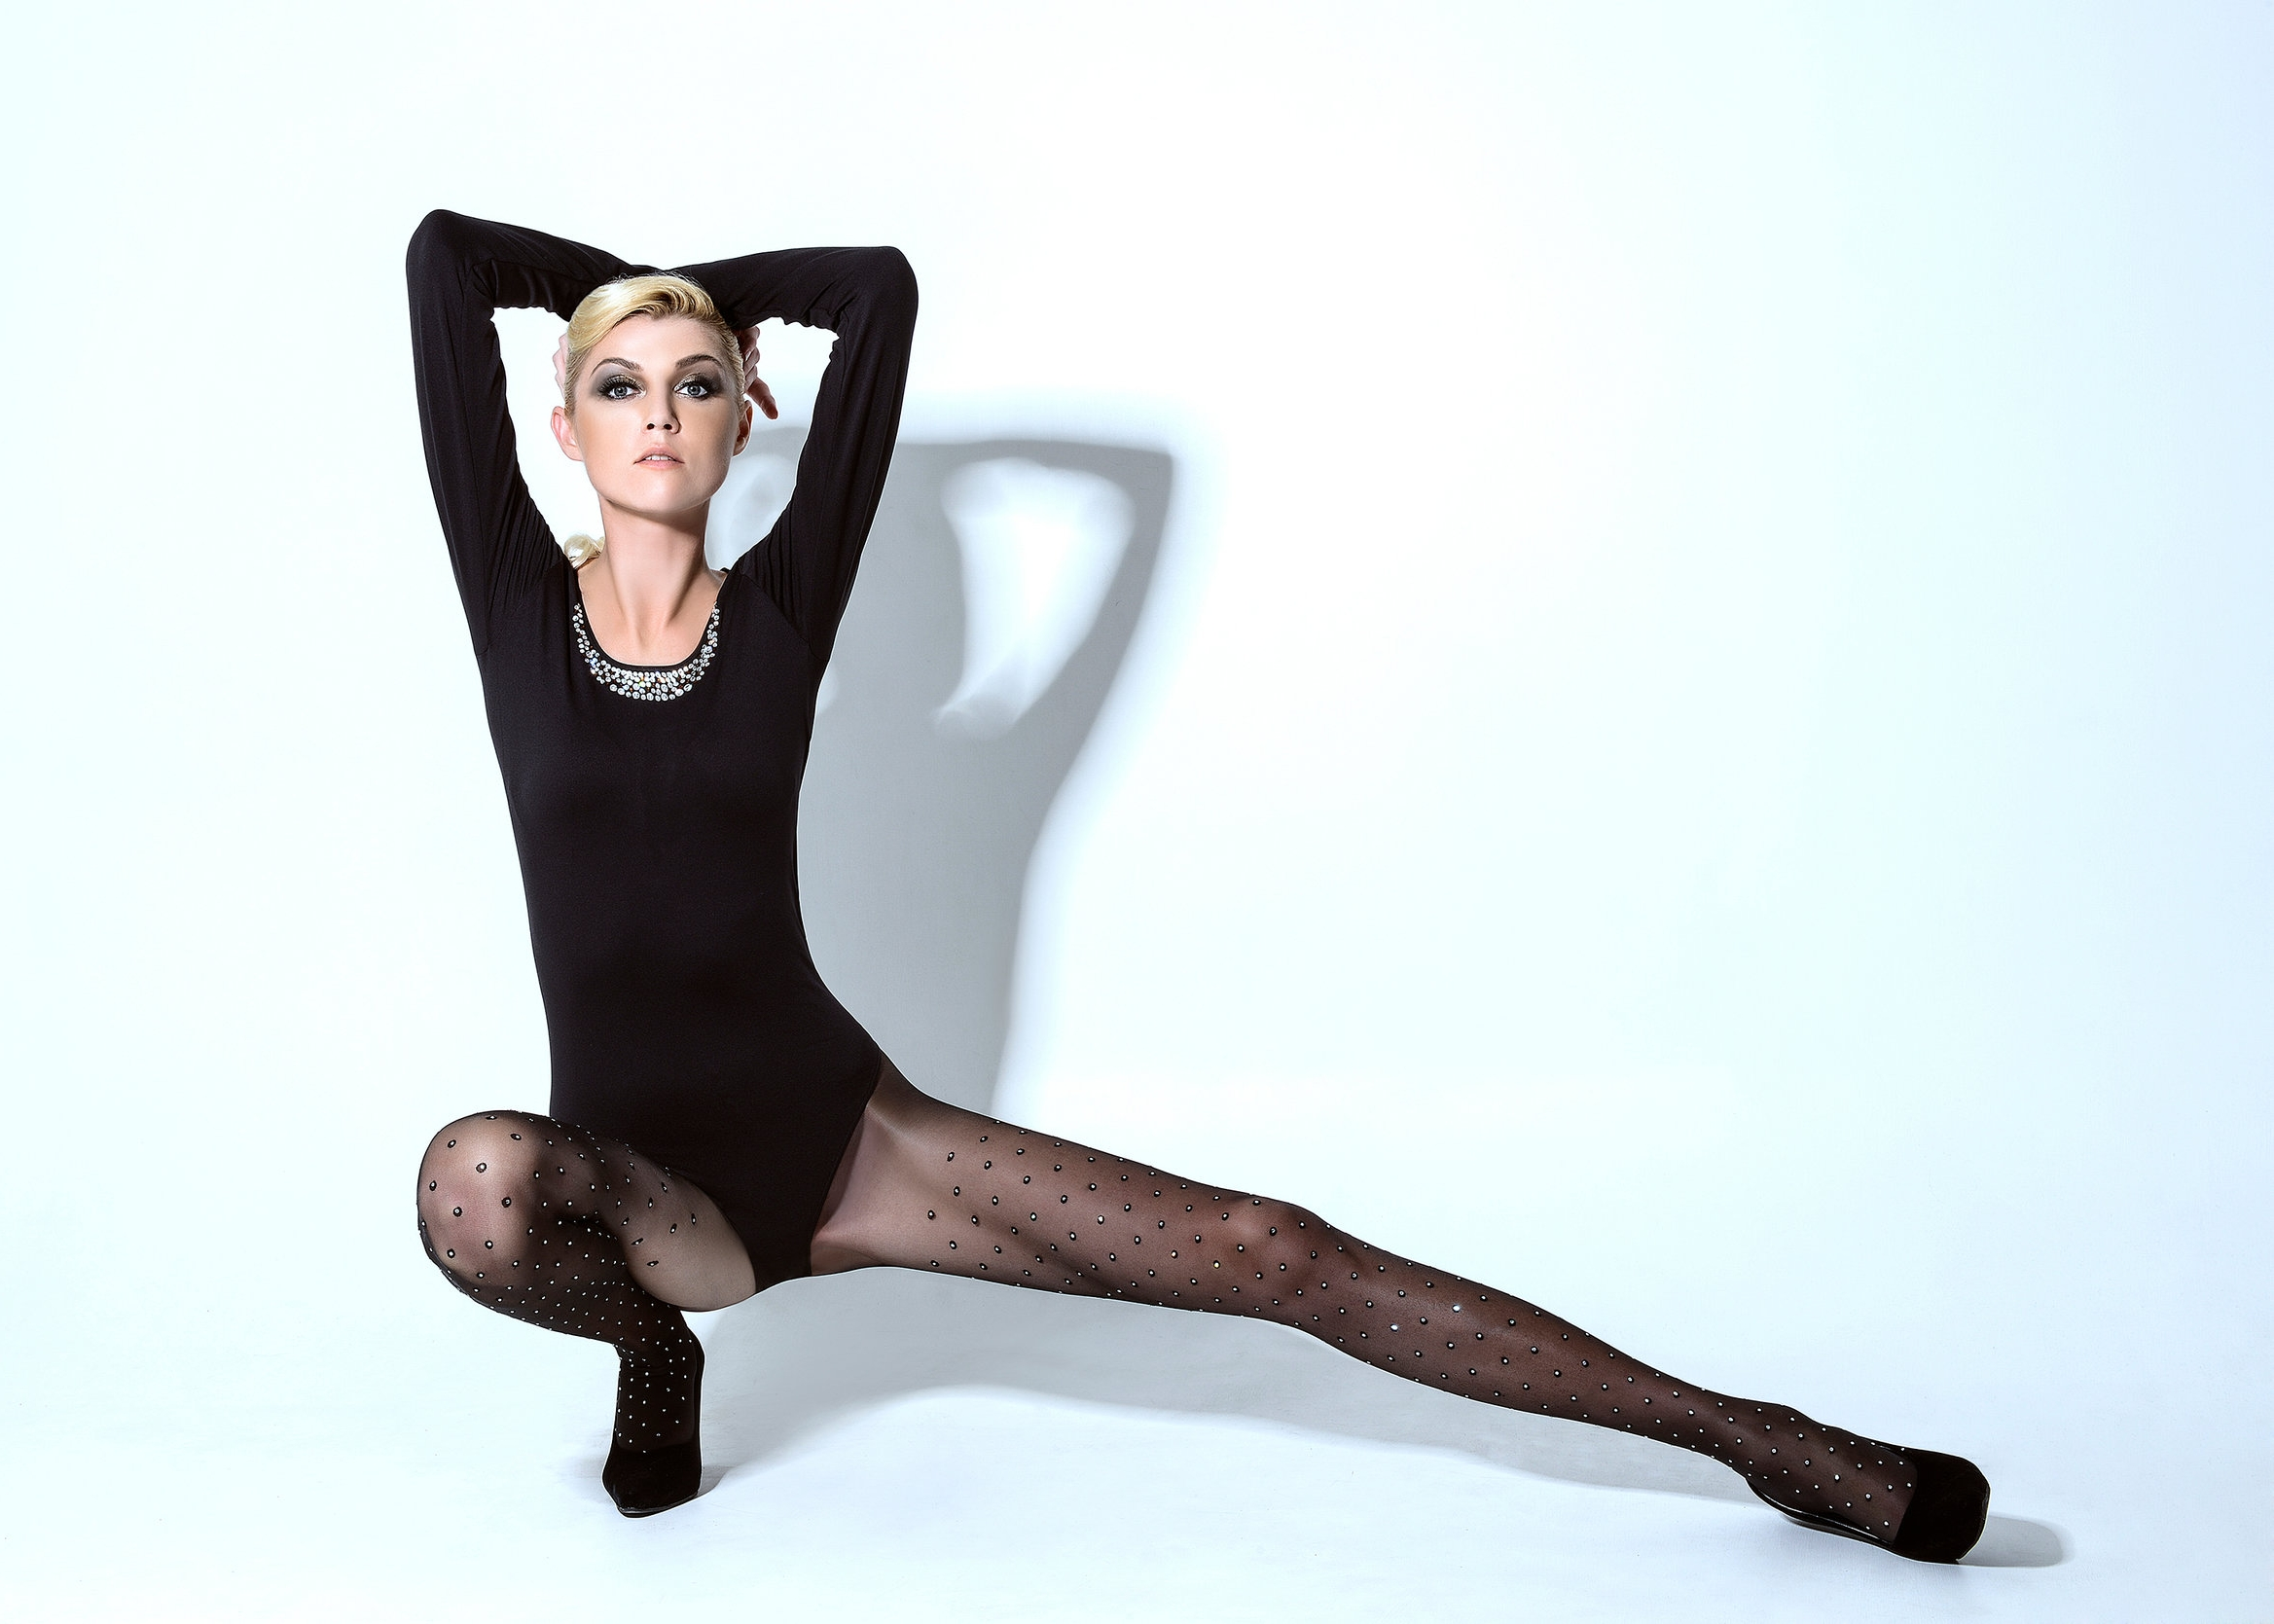 Wolford+Shoot-blonde-stretched-legs-(Revised).jpg